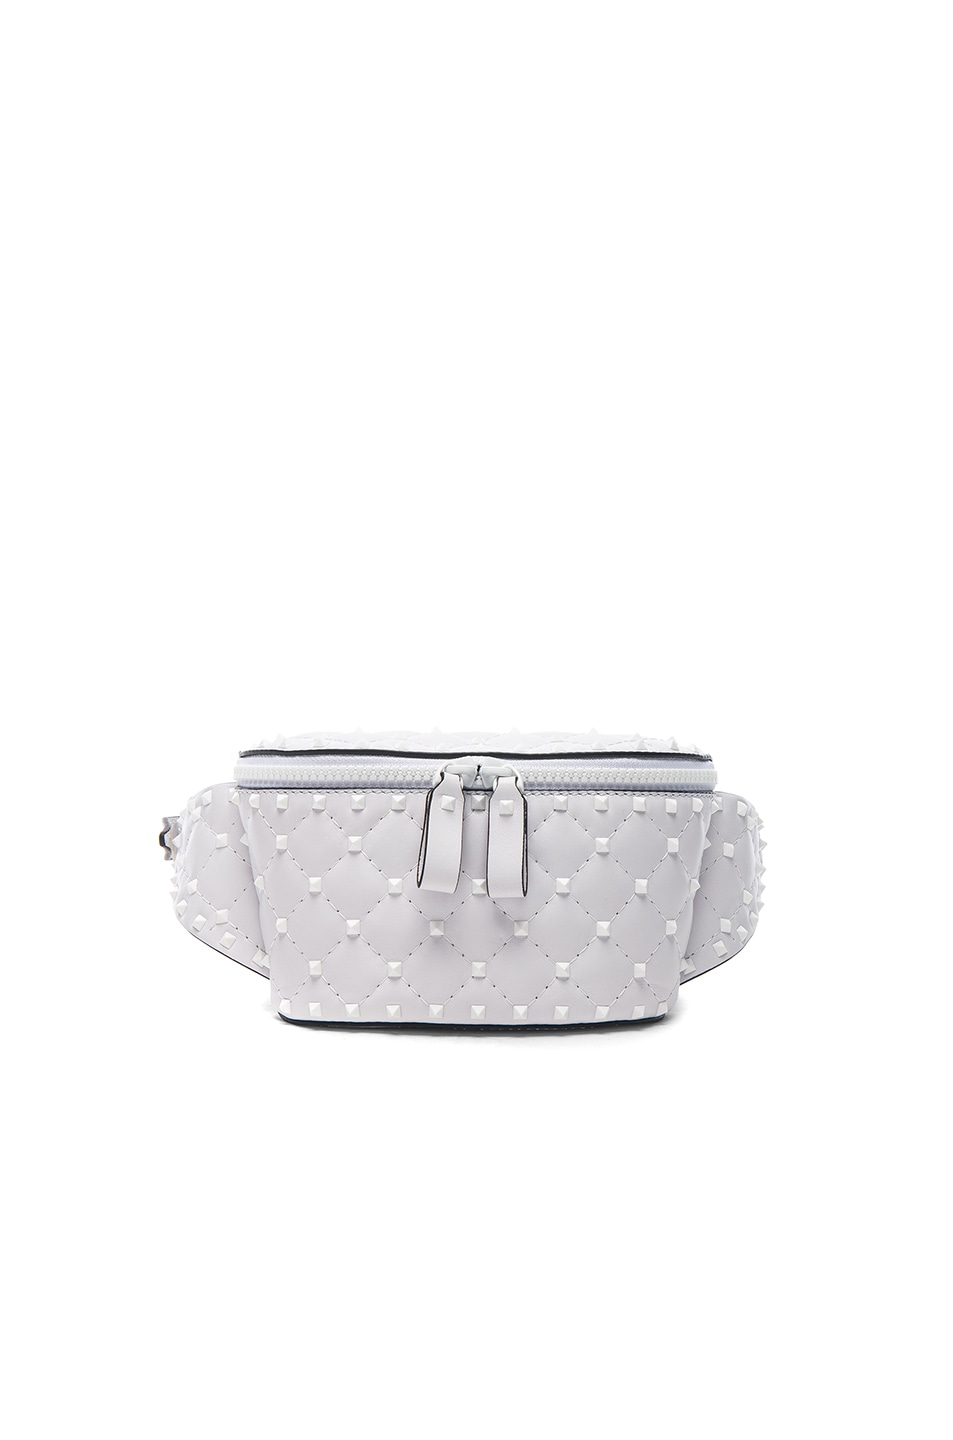 38fce8259c Image 1 of Valentino Small Free White Rockstud Spike Belt Bag in Optic White